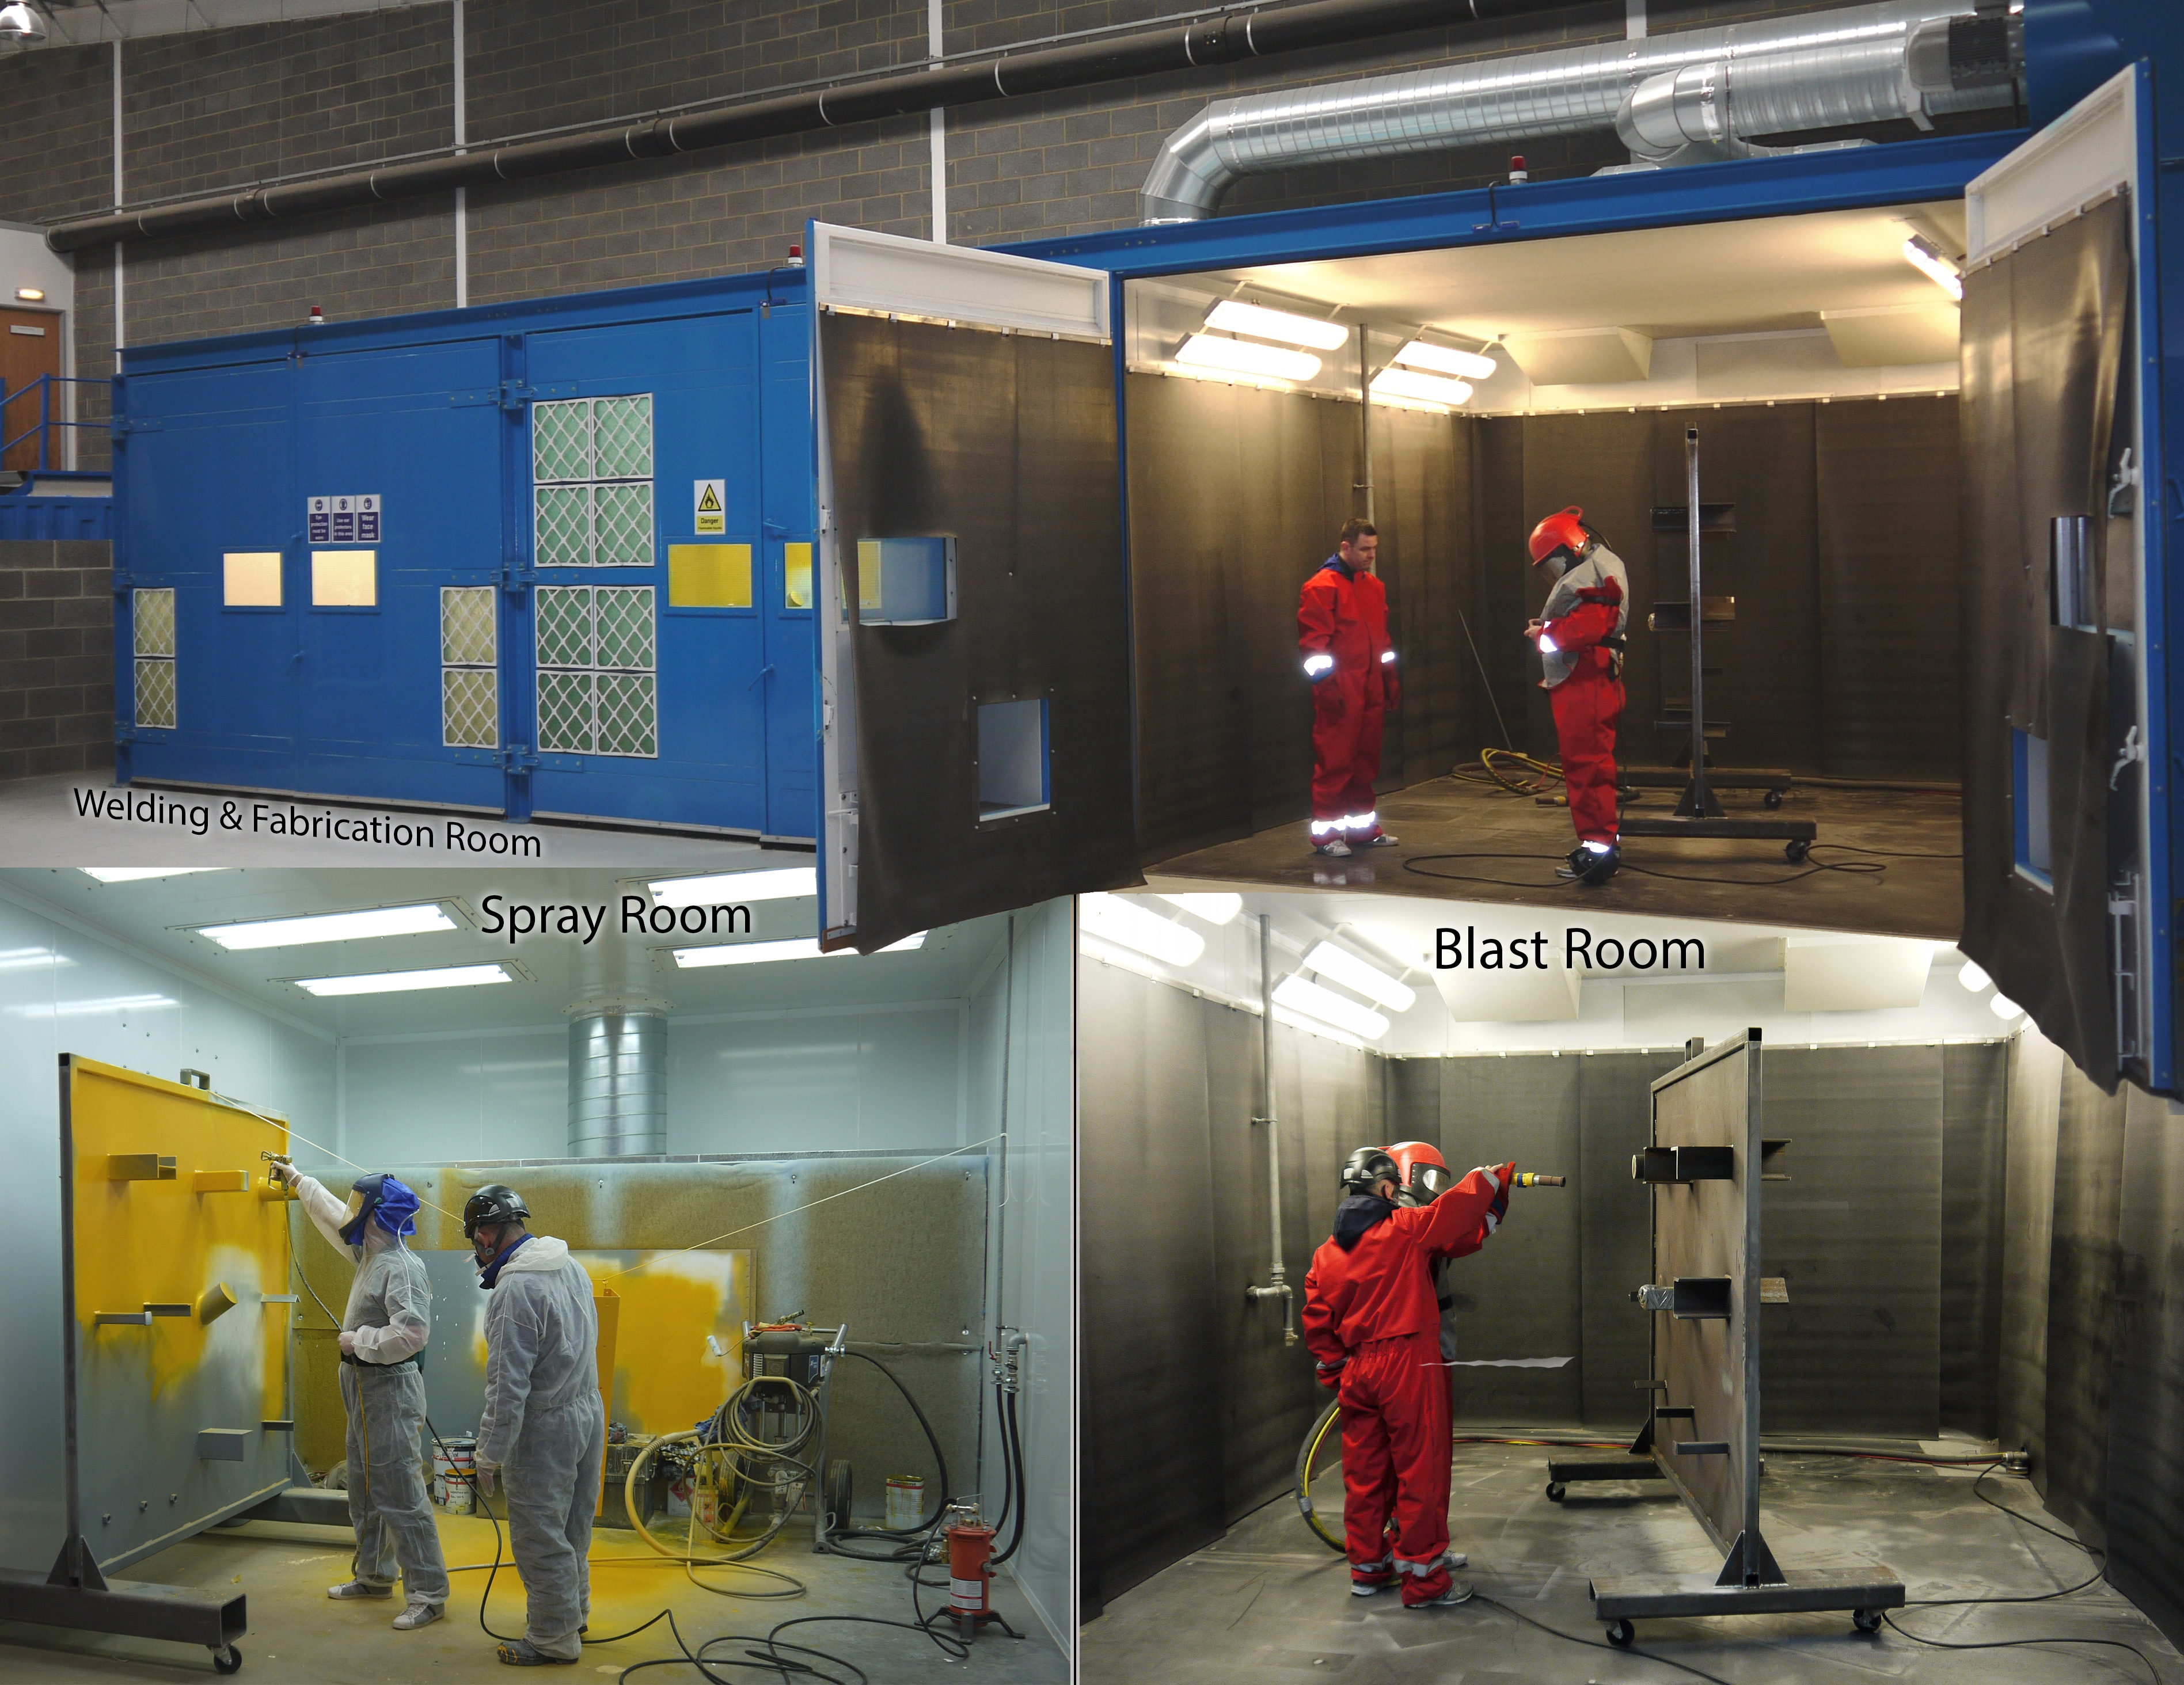 SELF-CONTAINED PRODUCTION ROOMS FOR PRODUCTION AND TRAINING